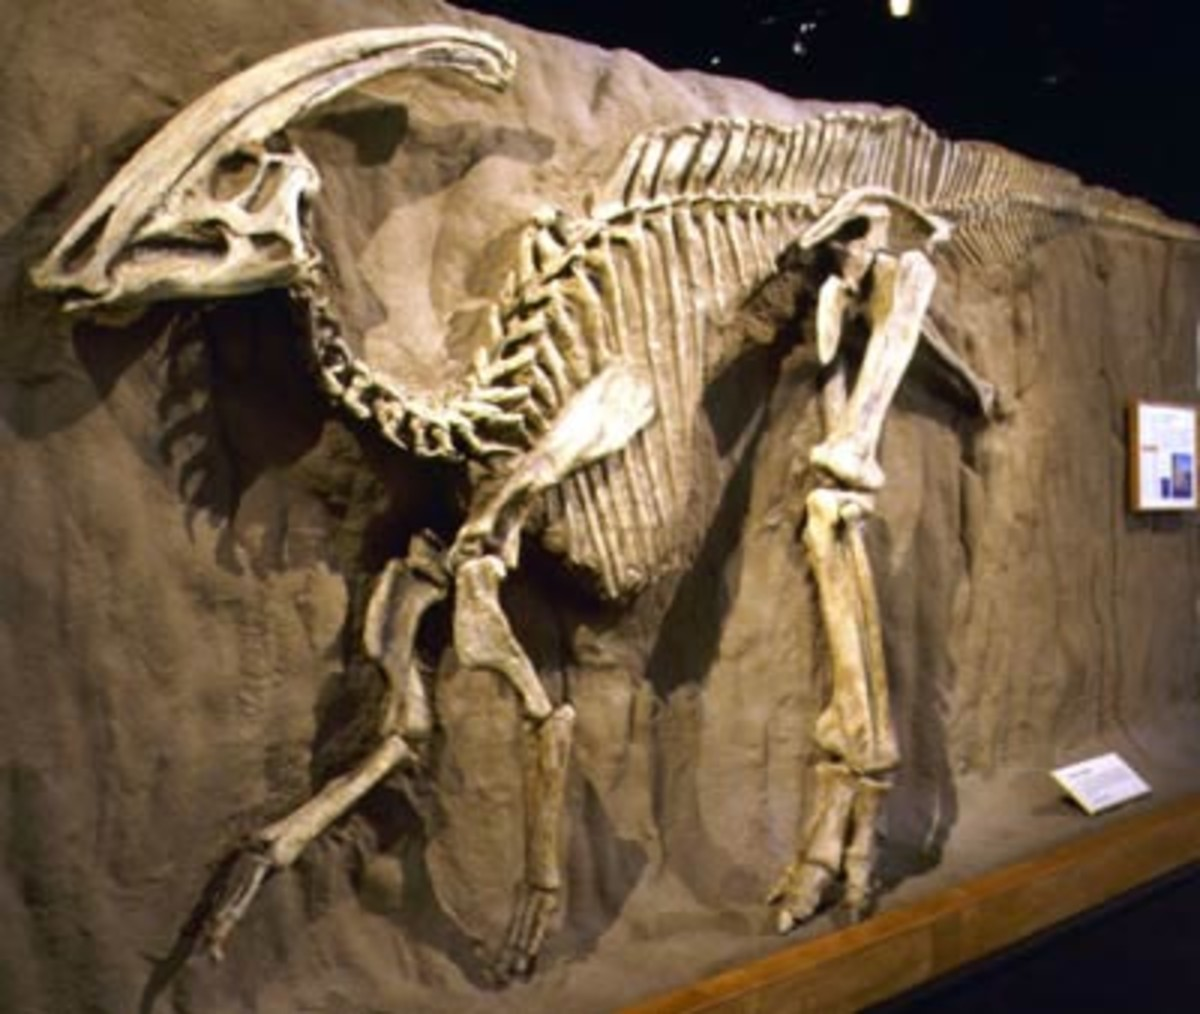 Parasaurolophus, one of the many dinosaurs to go extinct.